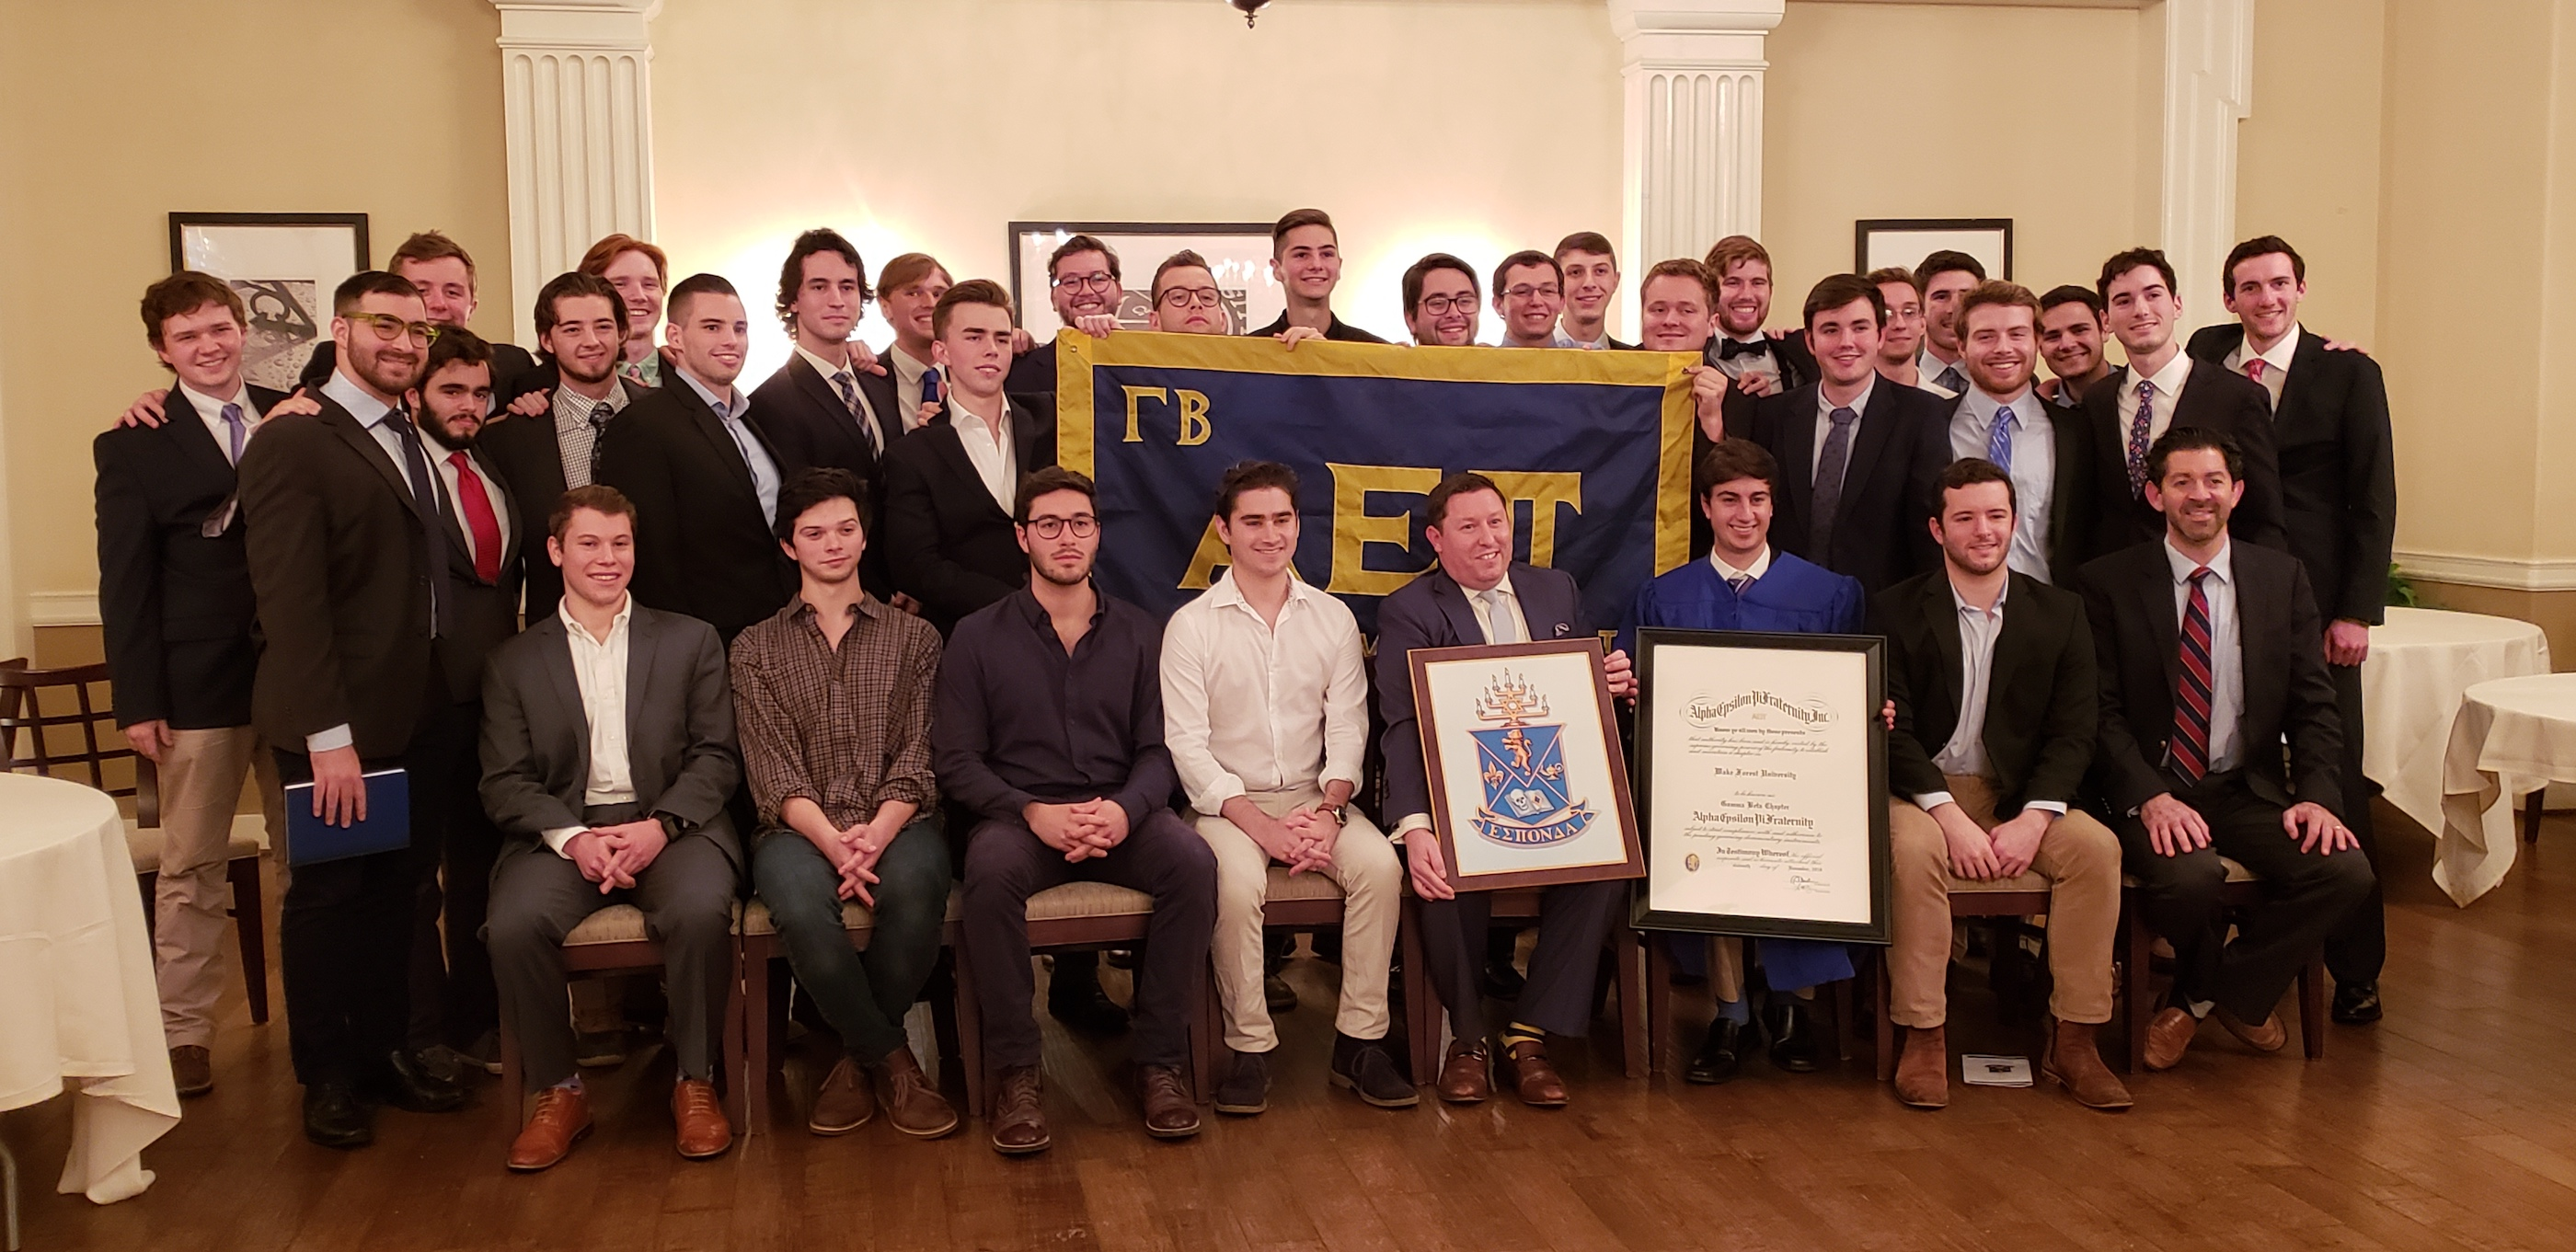 Wake Forest Chartering - Gamma Beta Brothers pose for a group photo with Supreme Scribe Scott Knapp (Florida State, 2002).